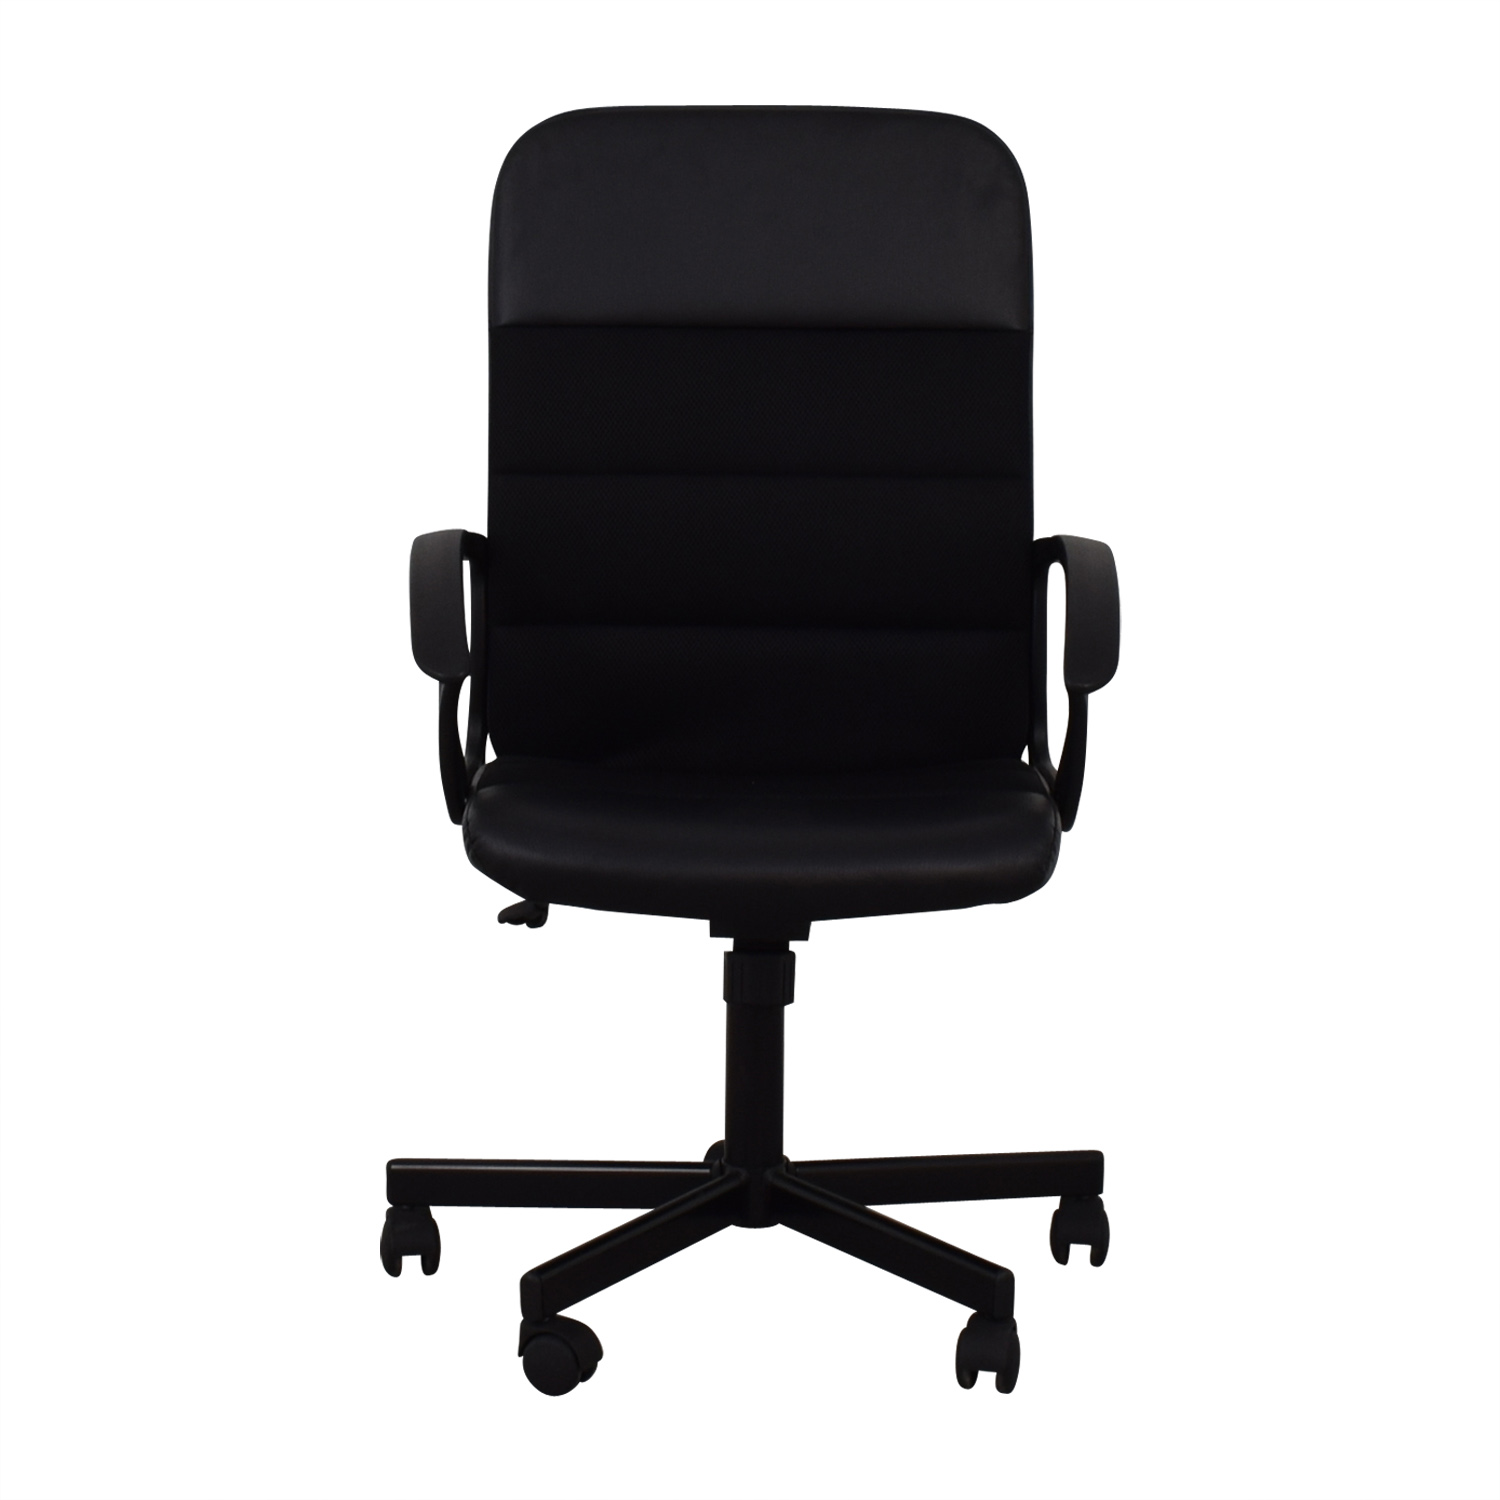 Merveilleux IKEA IKEA Renberget Black Office Chairs Home Office Chairs